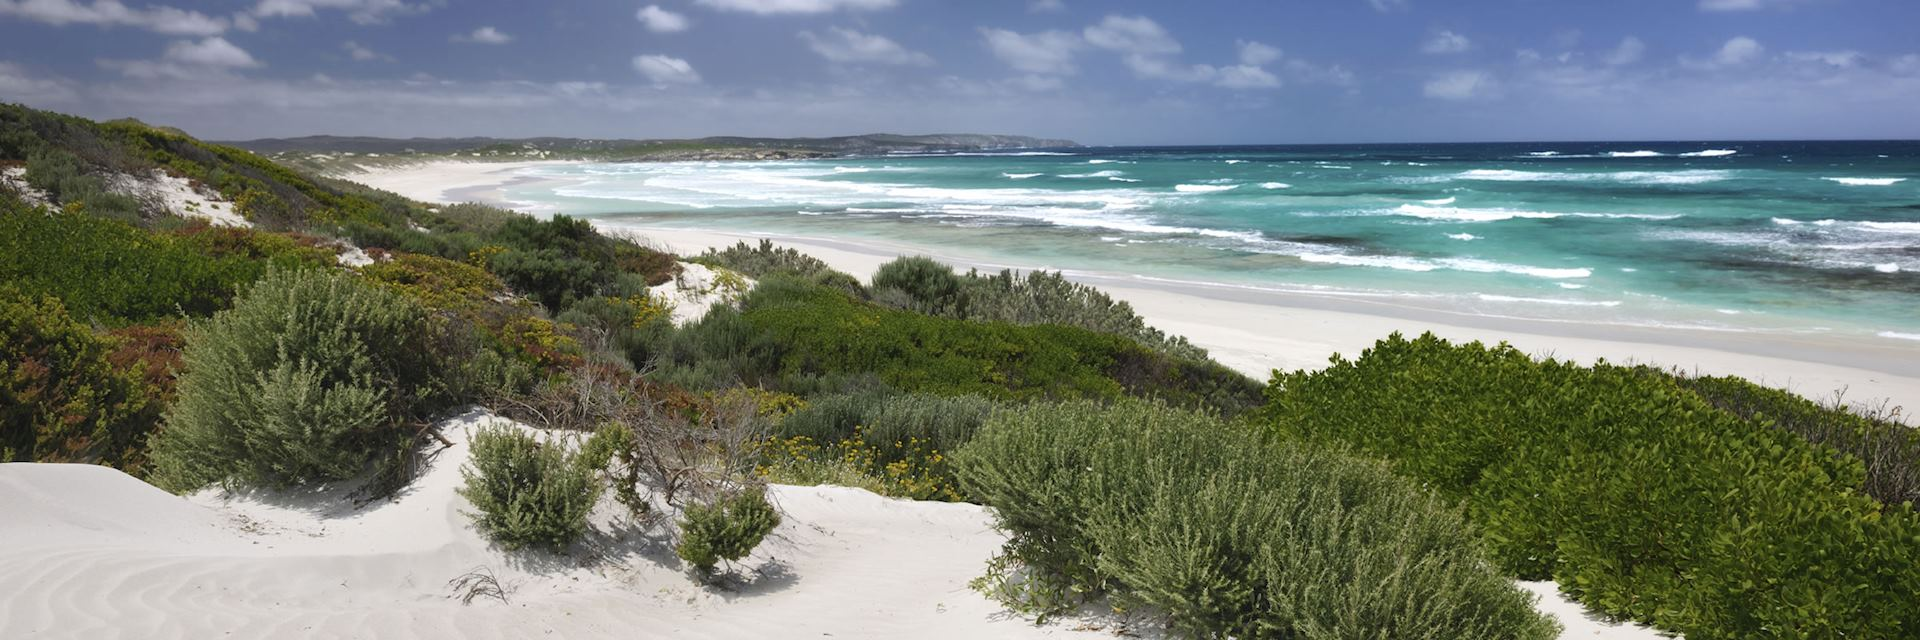 White sand beaches of Kangaroo Island